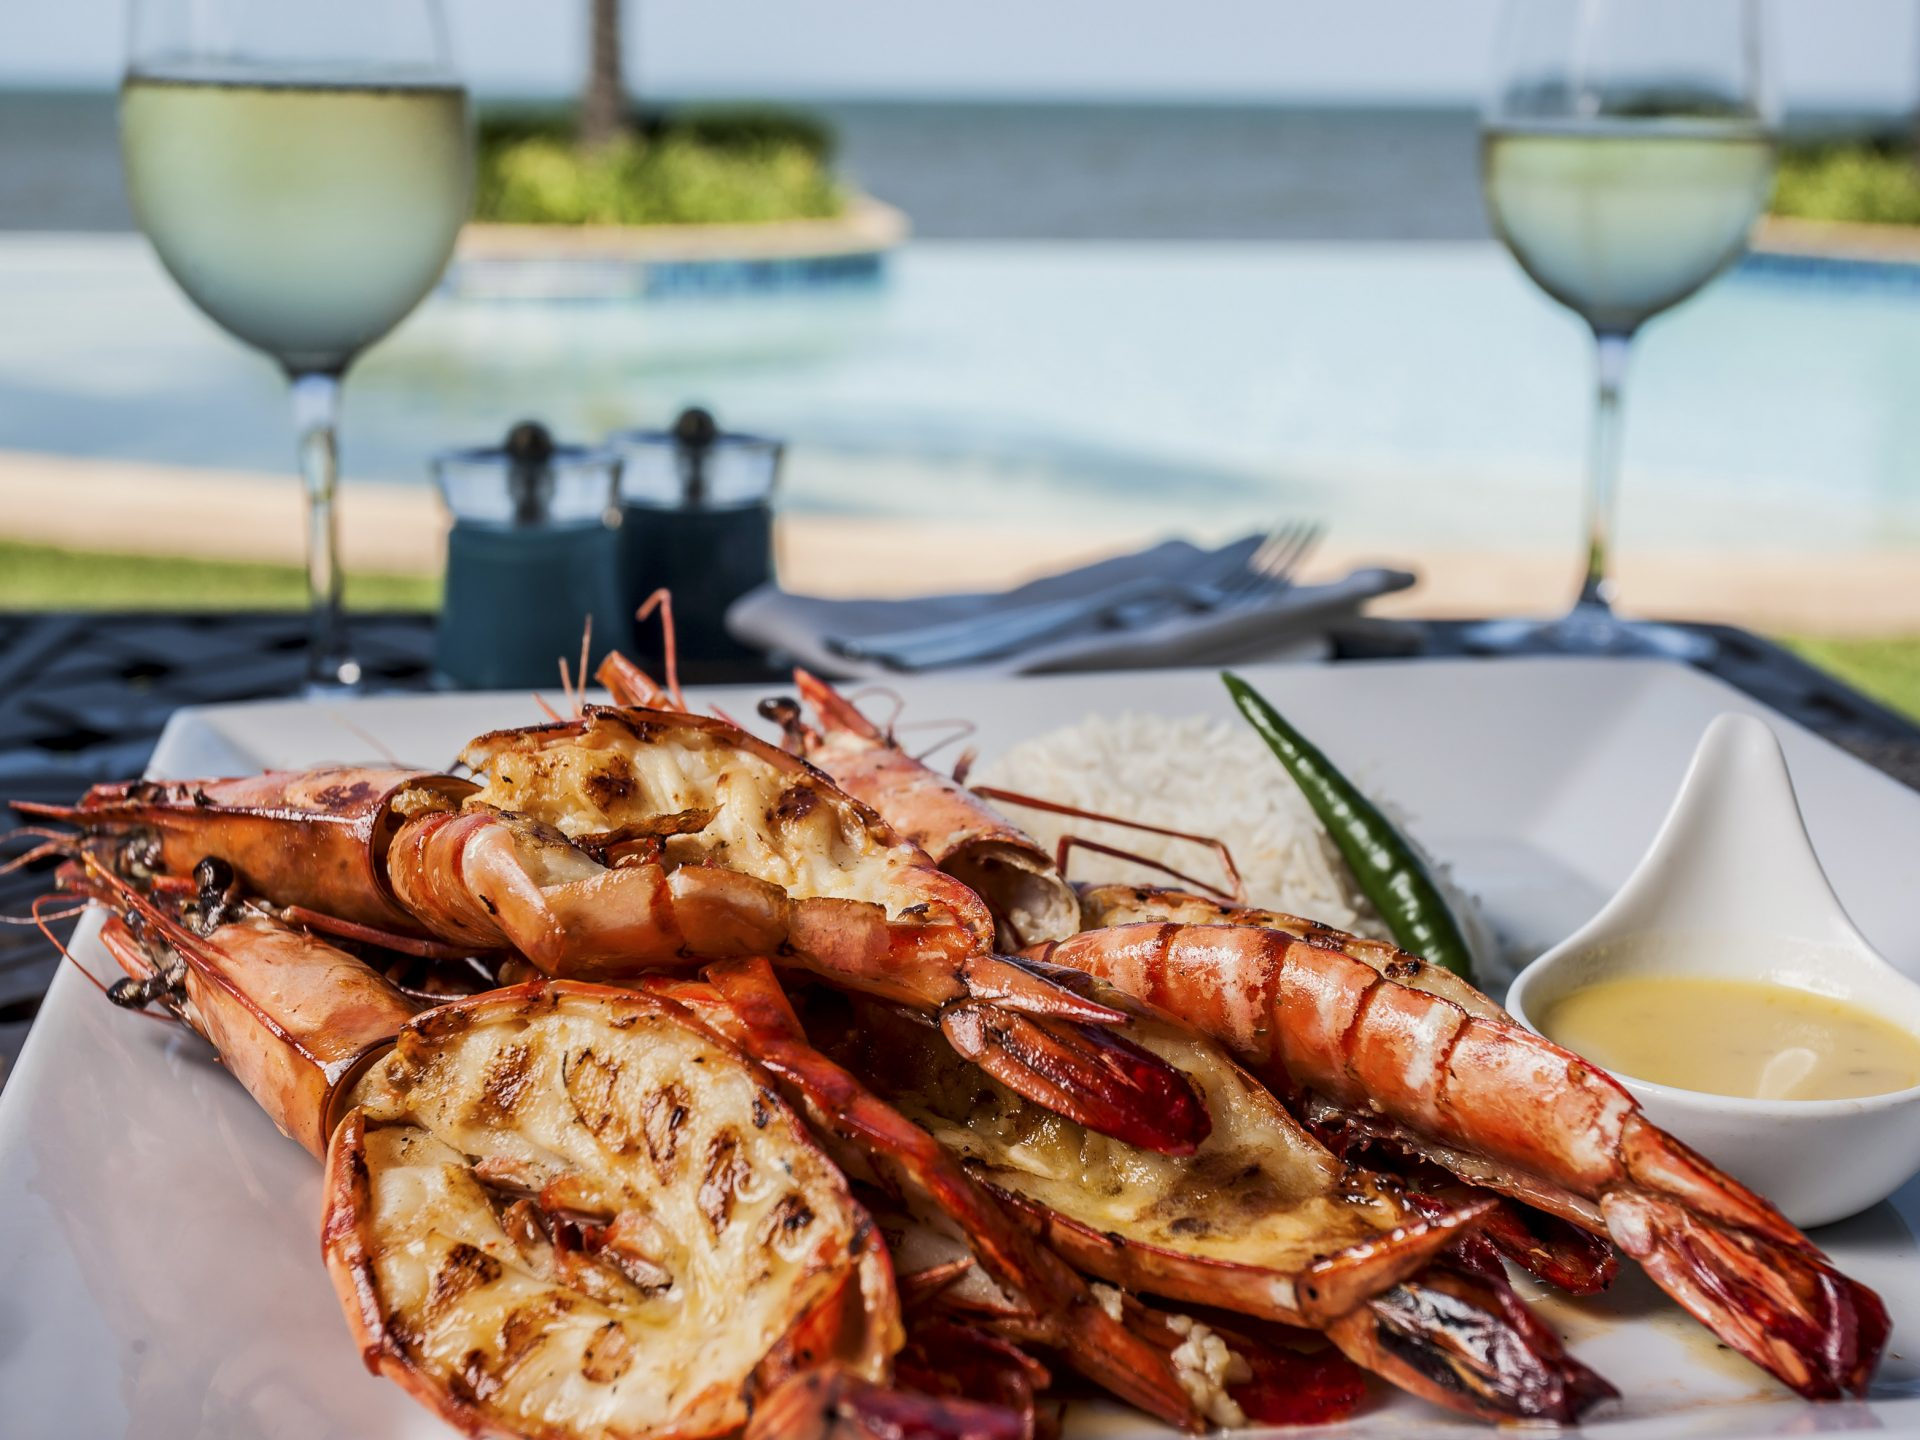 Prawns On A Plate At The Poolside